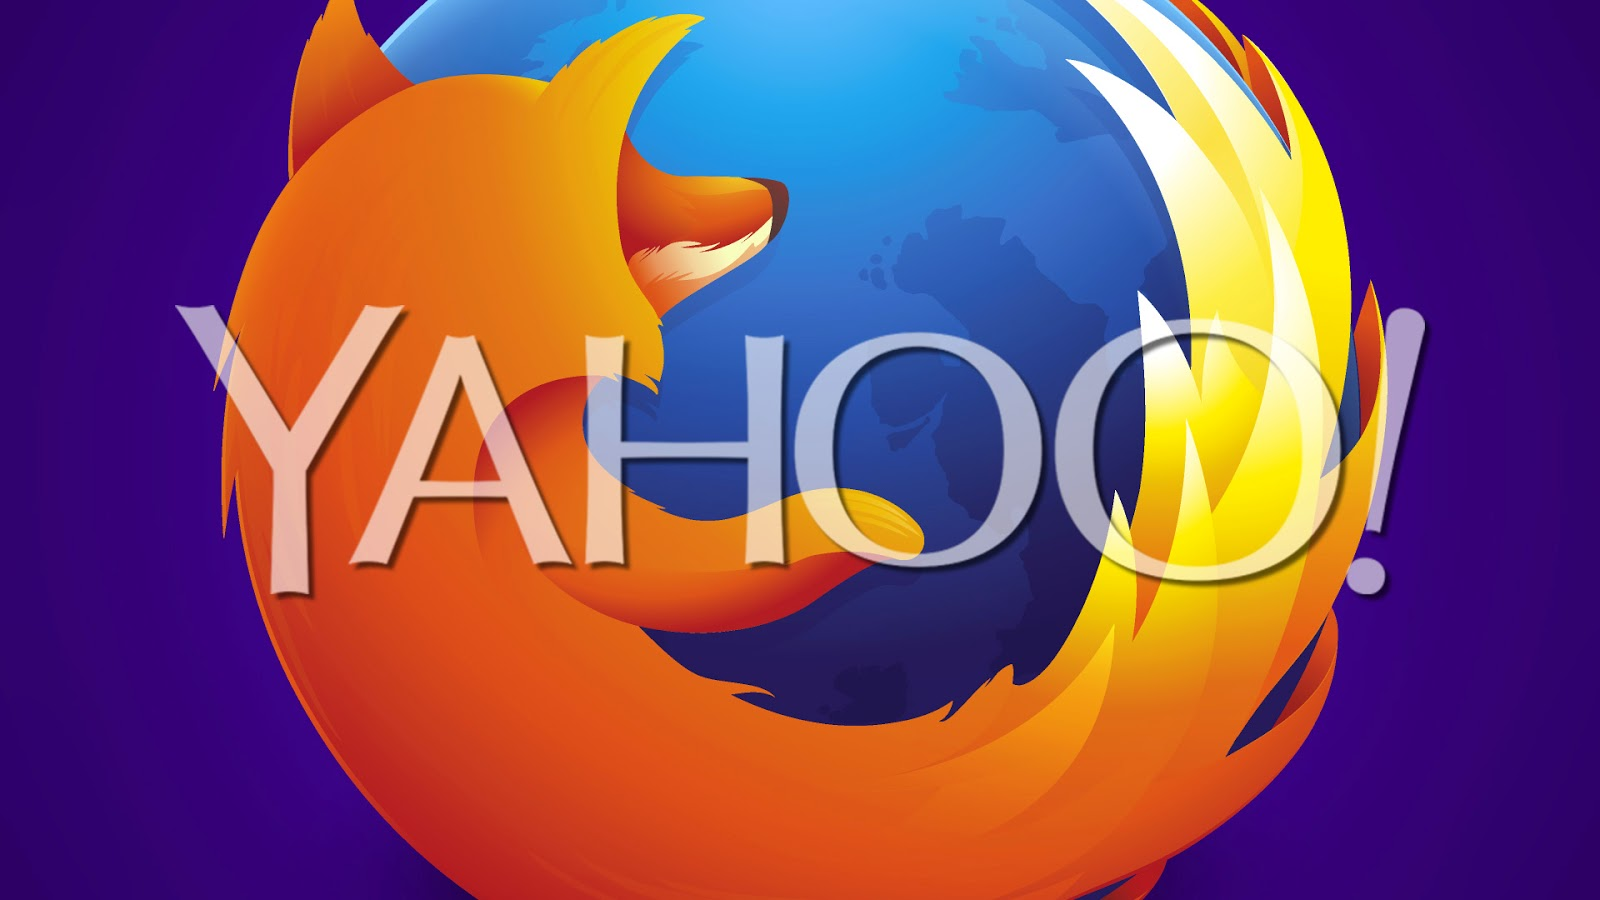 firefox officially switched to yahoo, google firefox leave